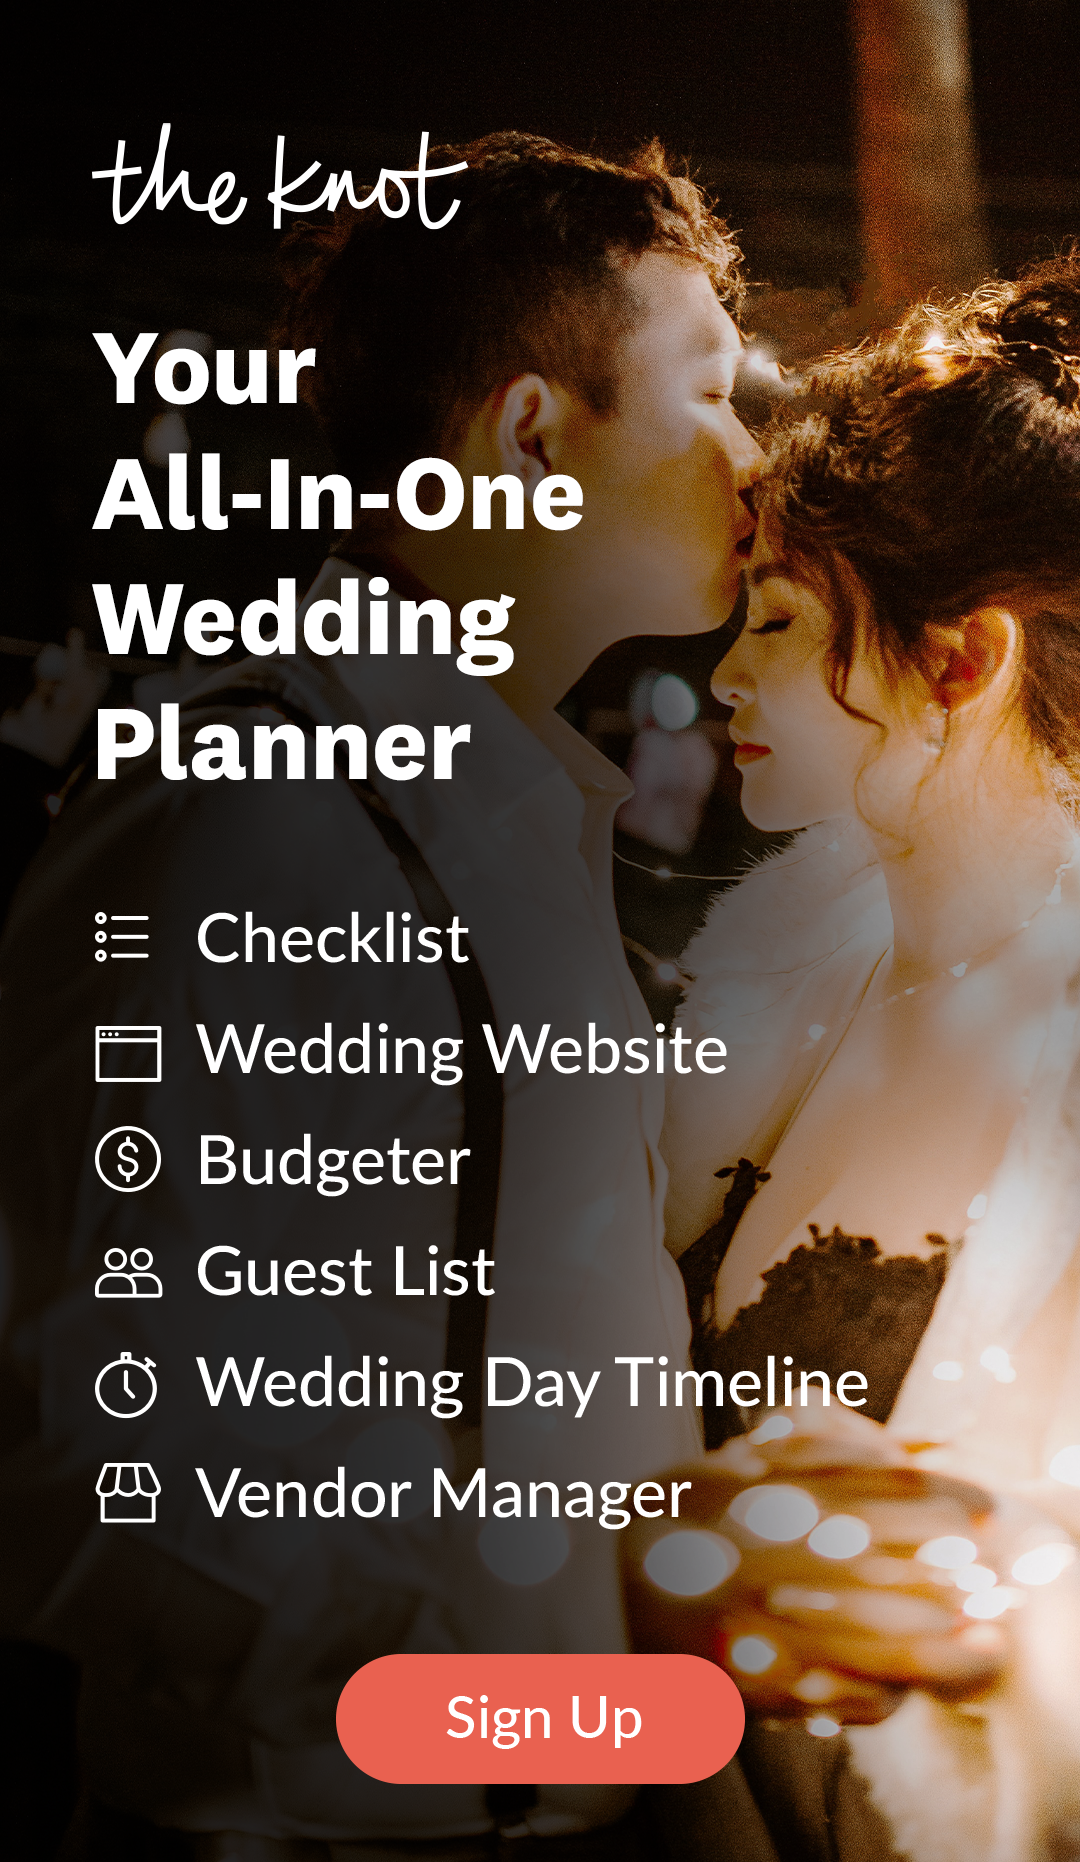 Plan your wedding with The Knot. Wedding planner